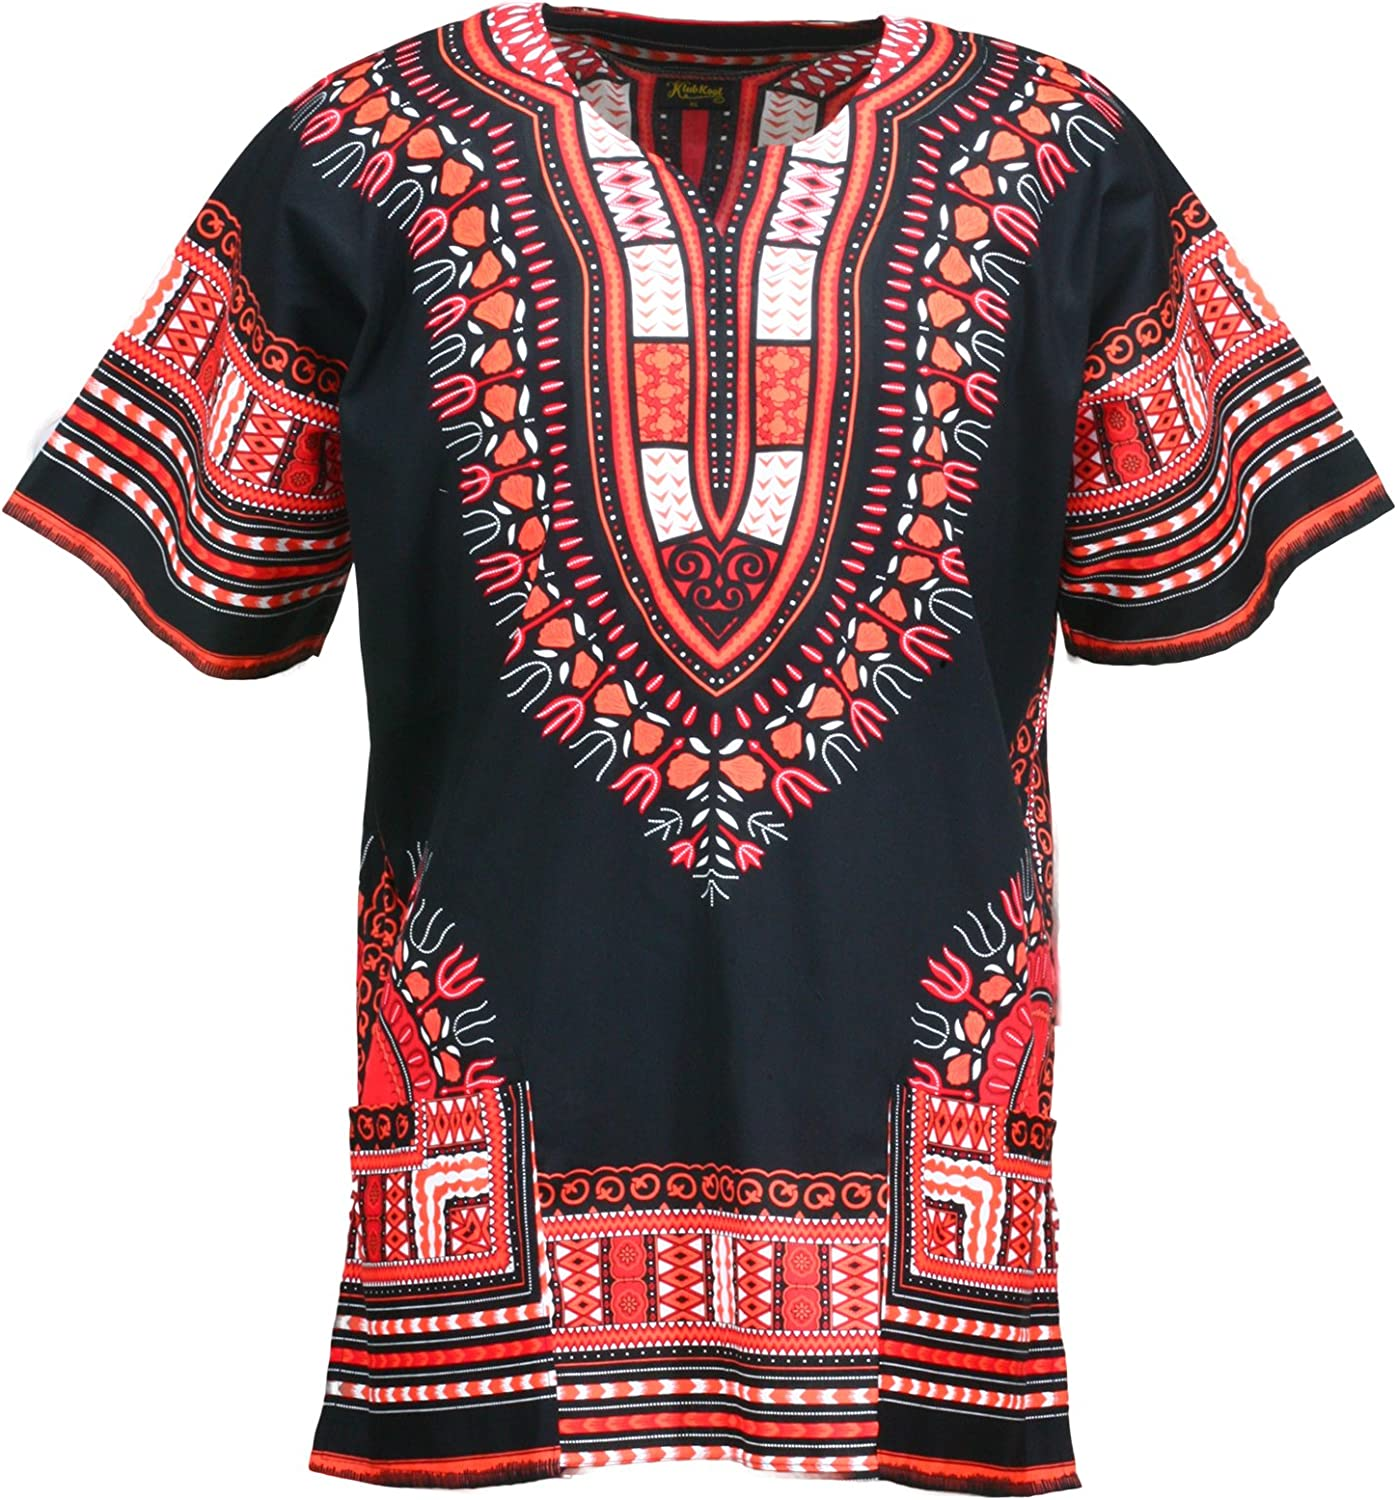 60s , 70s Hippie Clothes for Men KlubKool Dashiki Shirt Tribal African Caftan Boho Unisex Top Shirt $12.50 AT vintagedancer.com